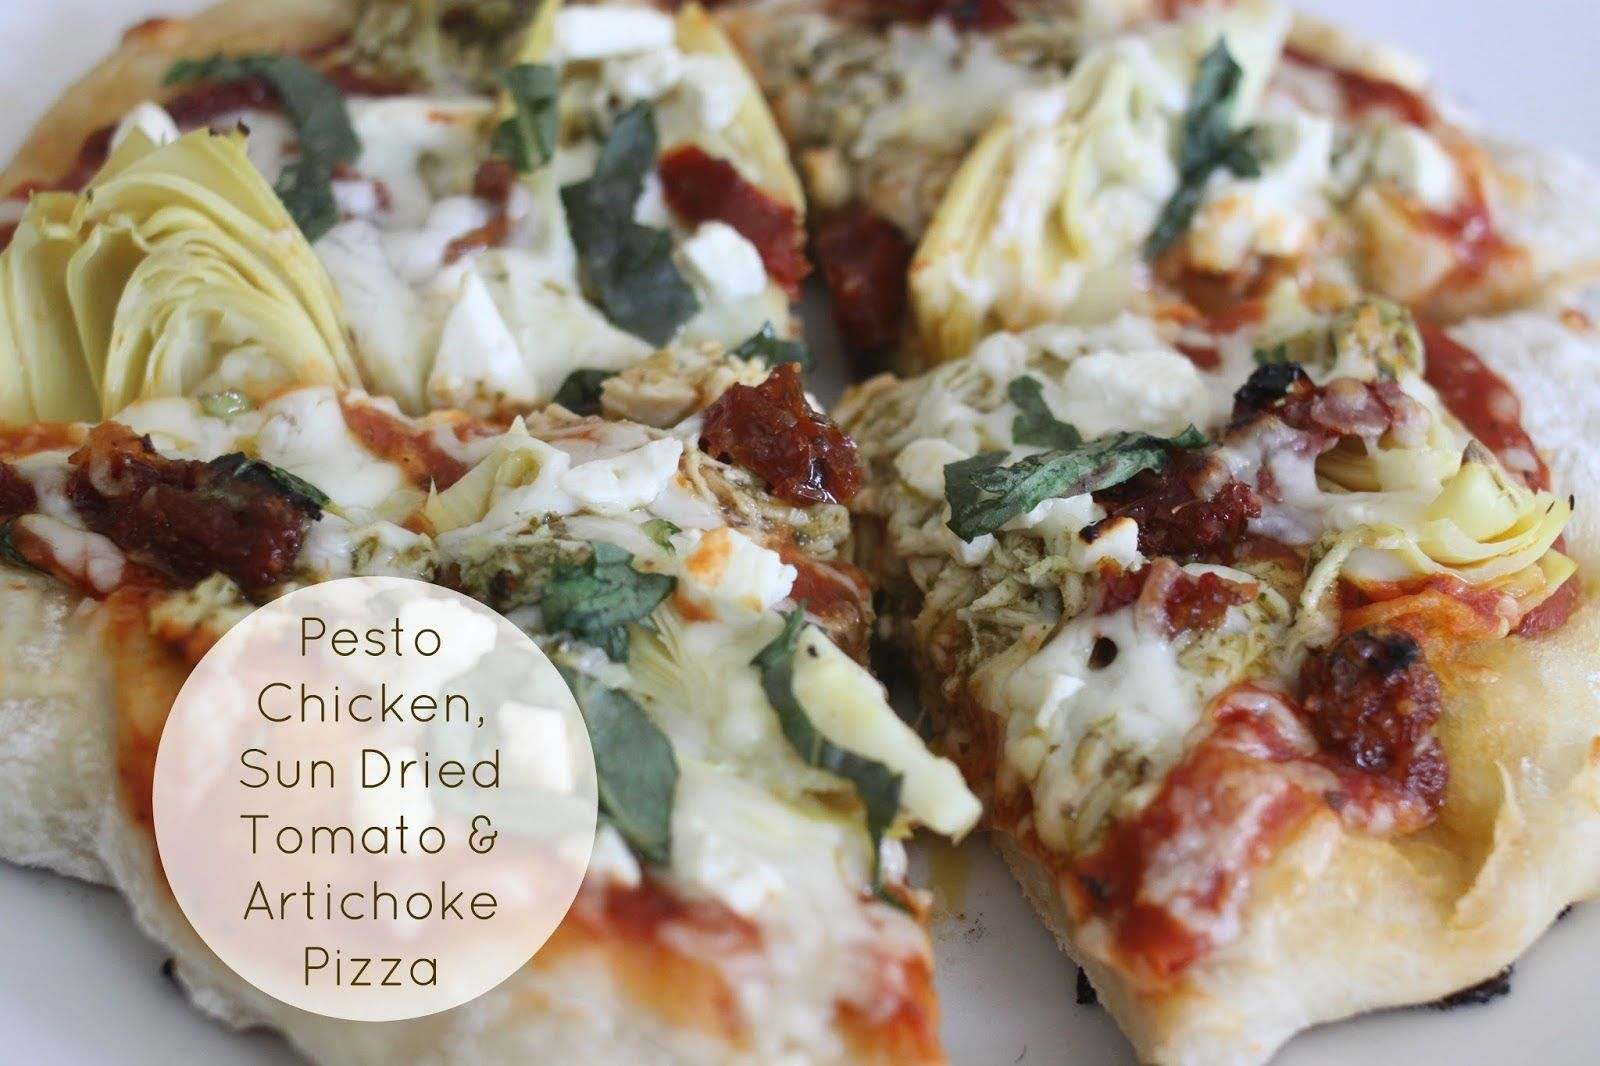 Pesto Chicken Sun Dried Tomato Artichoke Pizza Artichoke Pizza Sun Dried Tomato Pesto Chicken